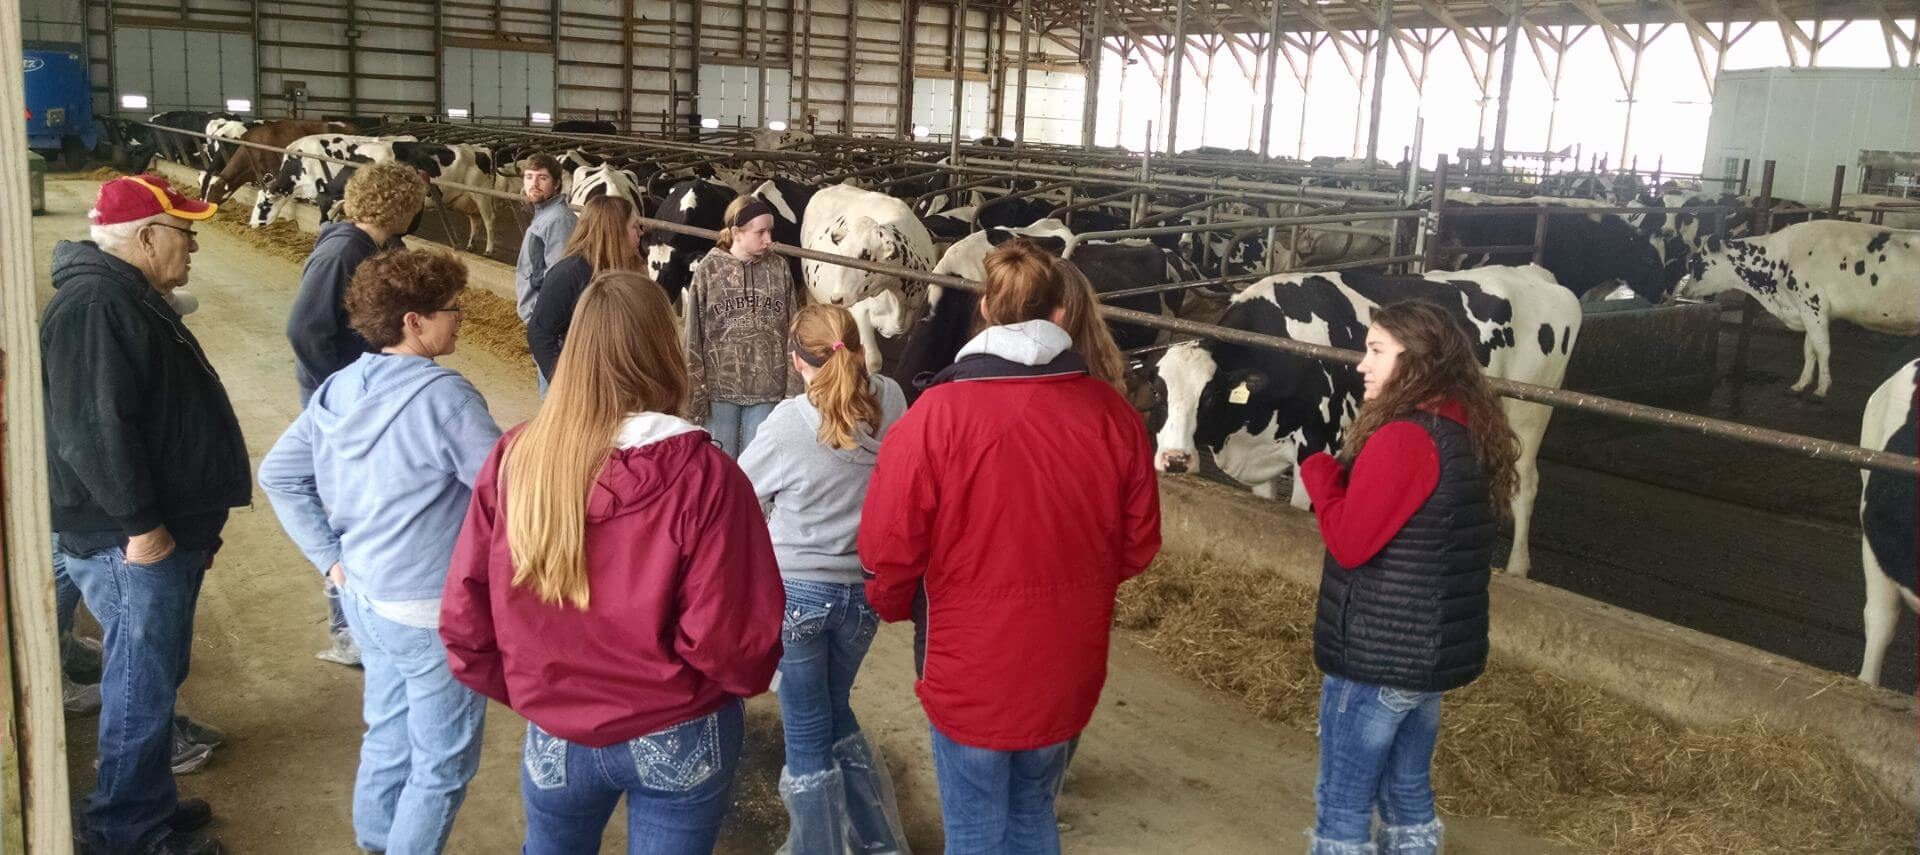 Group of people standing in a dairy barn with cows.